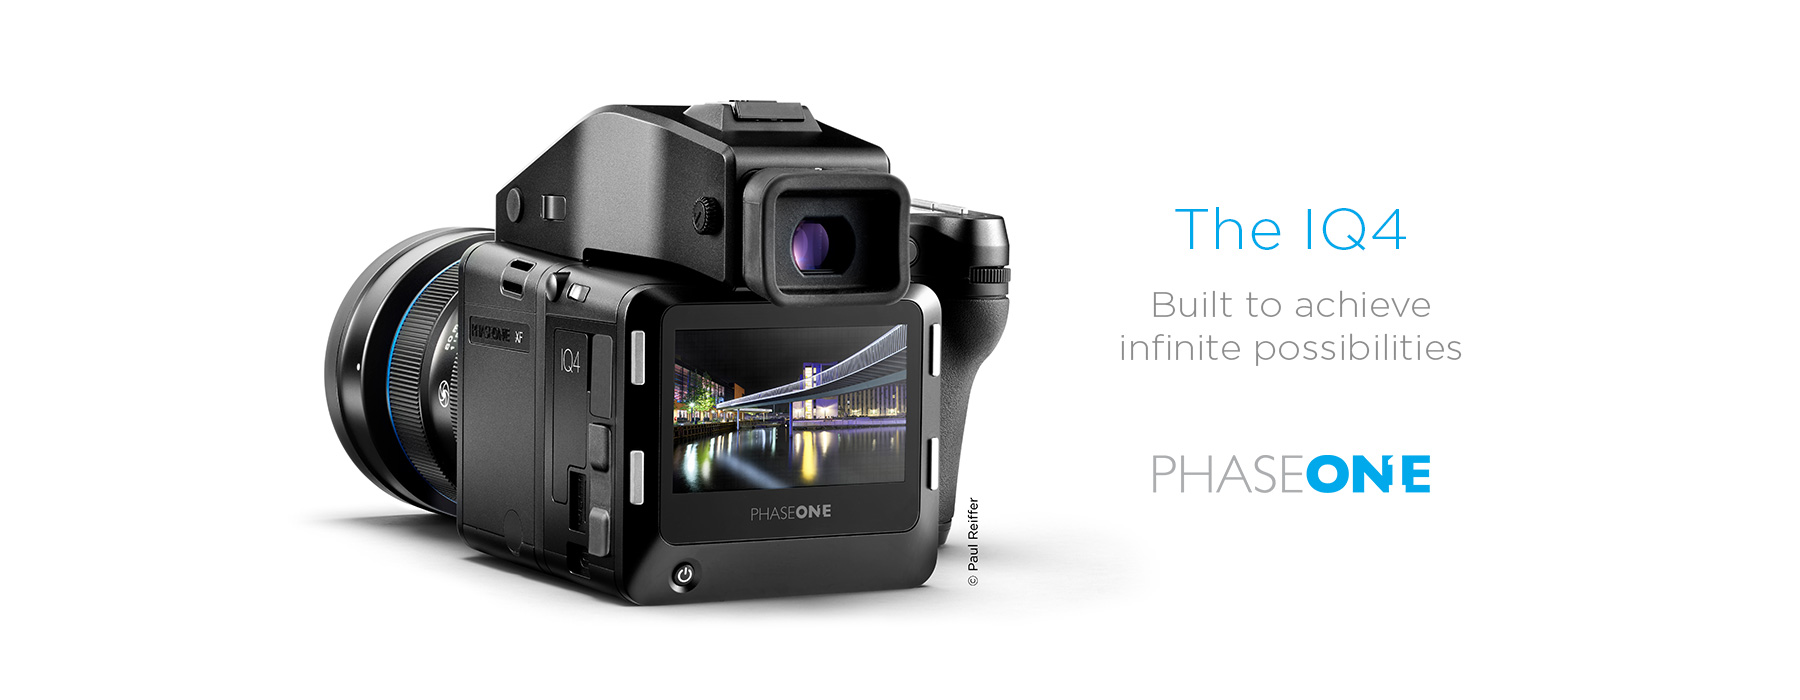 Phase one iq4 camera system banner